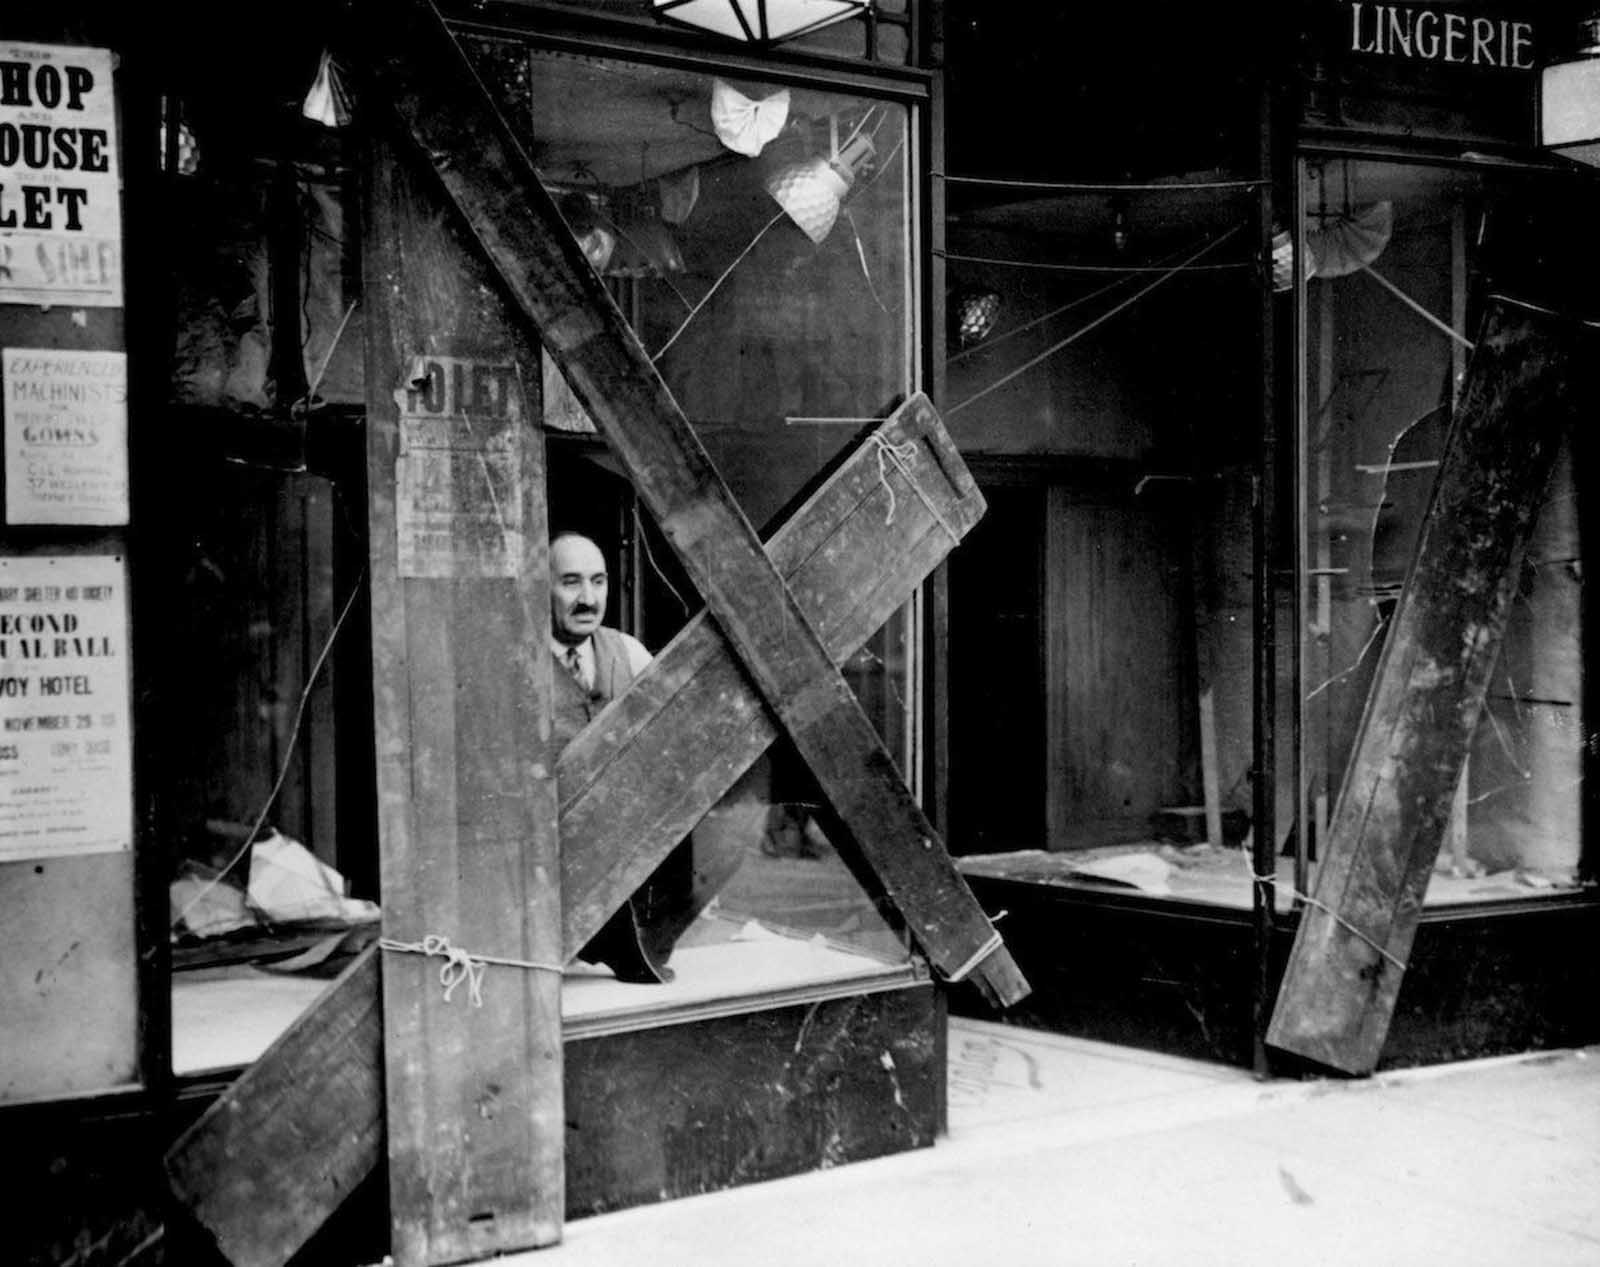 A Jewish shopkeeper peers out of his boarded up window in Mile End Road after a night of violence between Fascist and Communist factions in the East End. 1936.